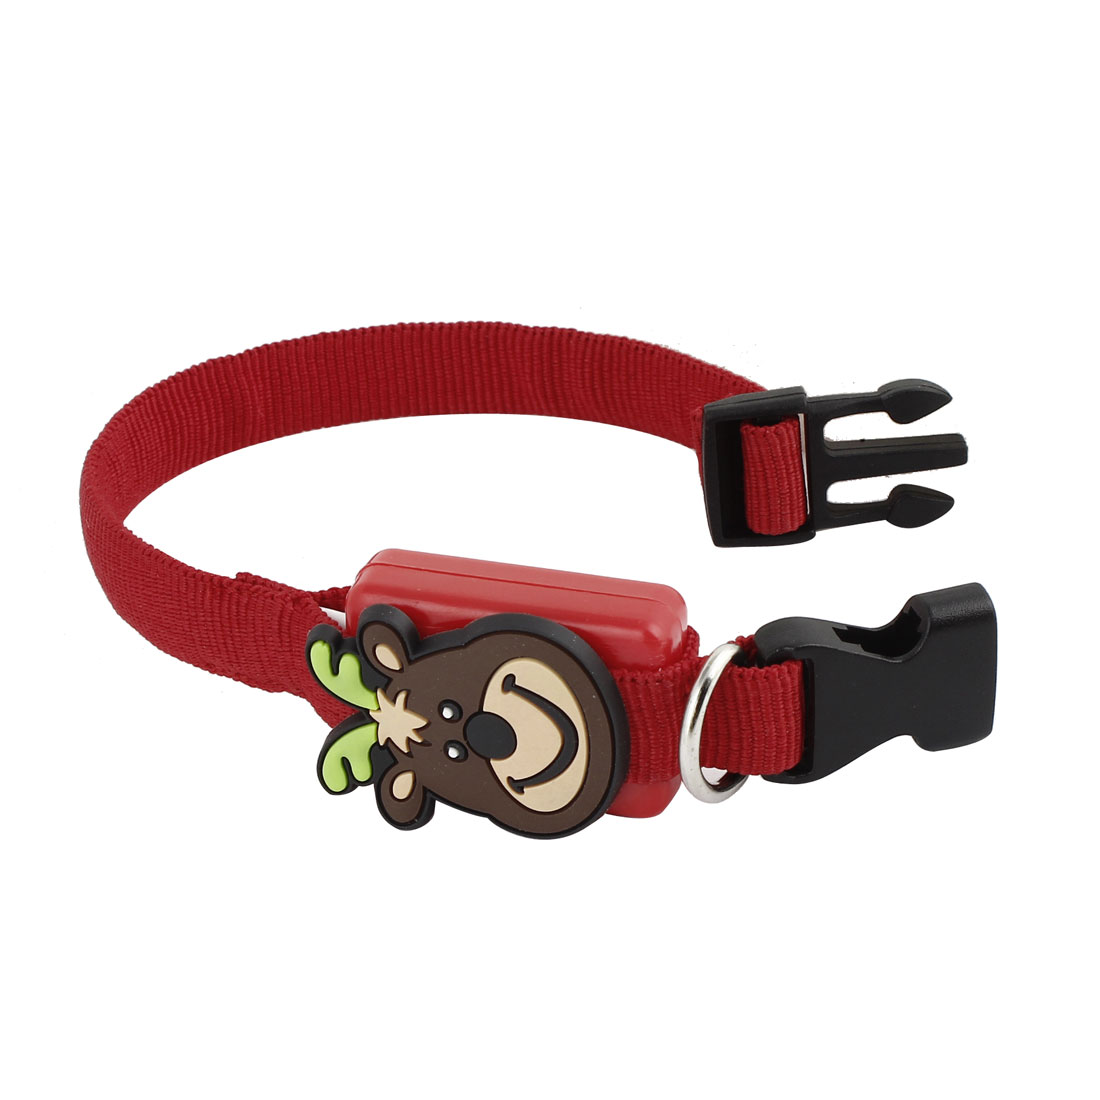 Release Buckle Nylon Strap Bear Head Design Accent 3 Modes LED Light Pet Dog Puppy Safety Collar Red